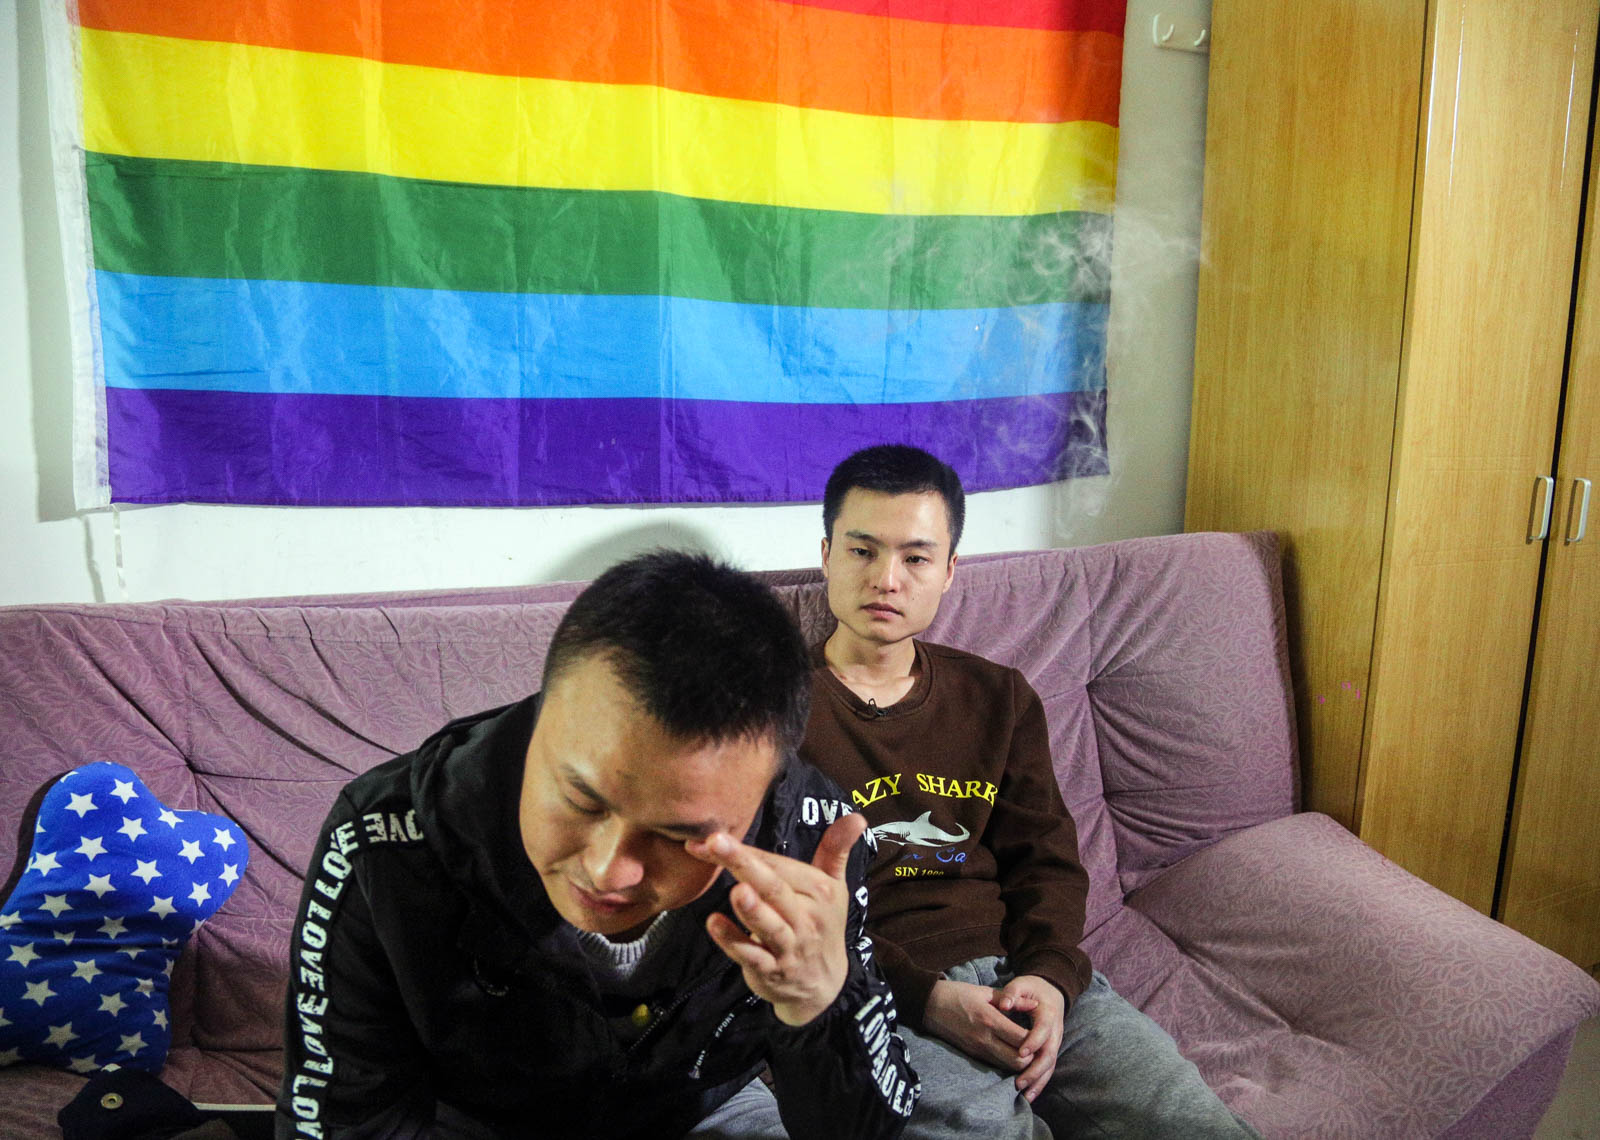 In this photo taken Tuesday, April 12, 2016, Sun Wenlin, right, sits with his partner Hu Mingliang at home a day before going to court to argue in China's first gay marriage case in Changsha in central China's Hunan province. A judge on Wednesday, April 13, 2016 ruled against the gay couple in China's first same-sex marriage case that attracted several hundred cheering supporters to the courthouse and was seen as a landmark moment for the country's emerging LGBT rights movement. (AP Photo/Gerry Shih)